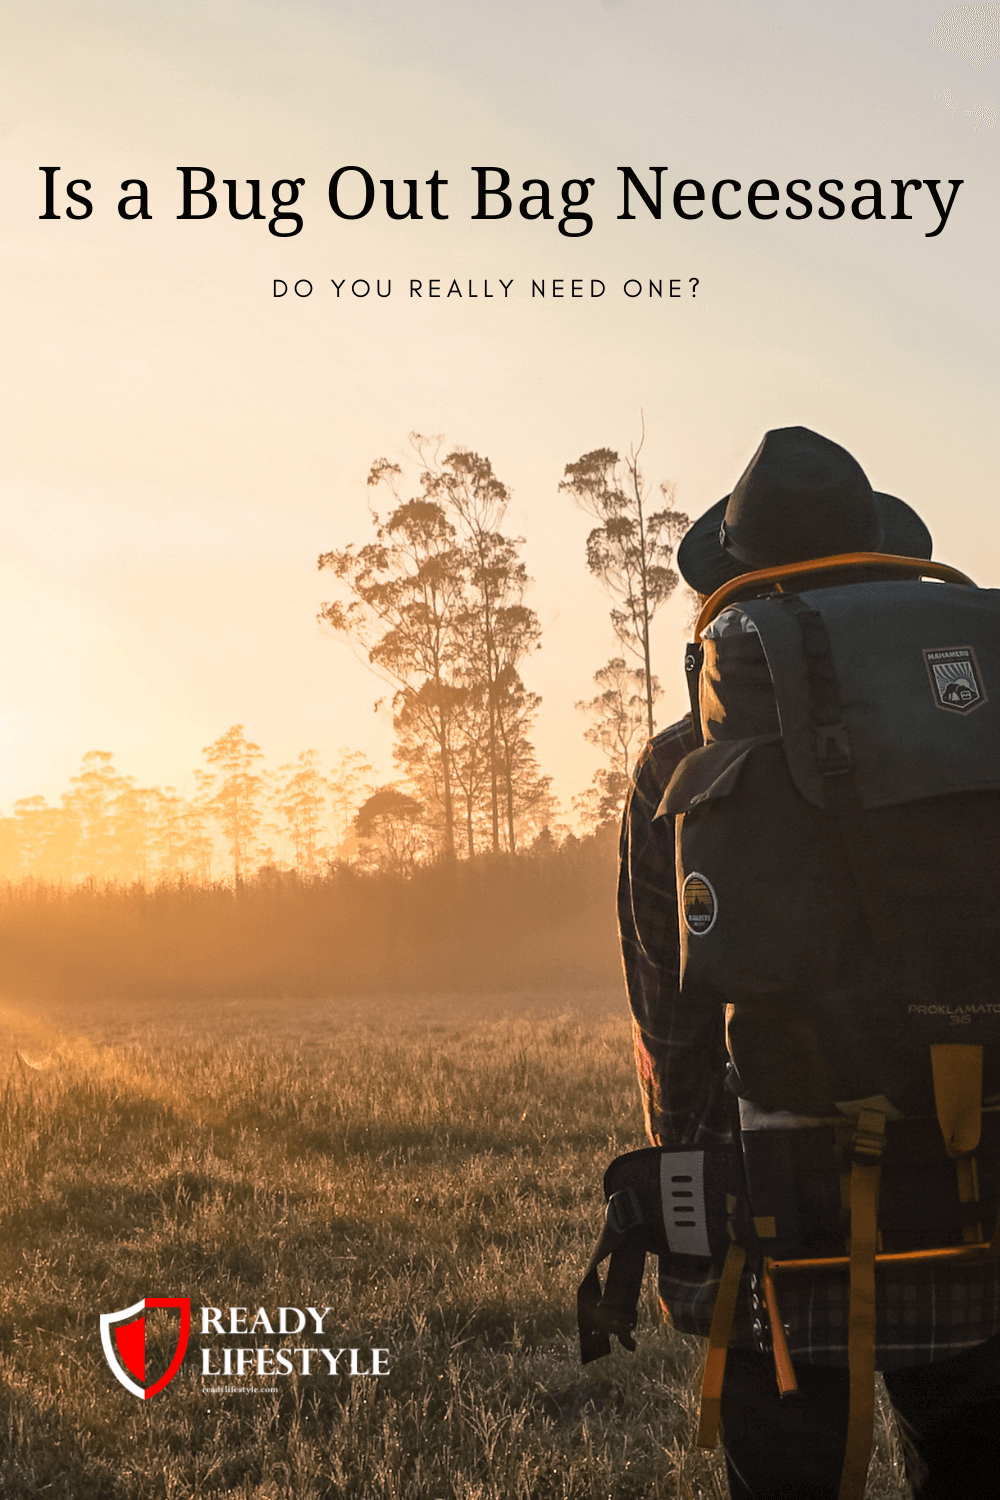 Is a Bug Out Bag Necessary